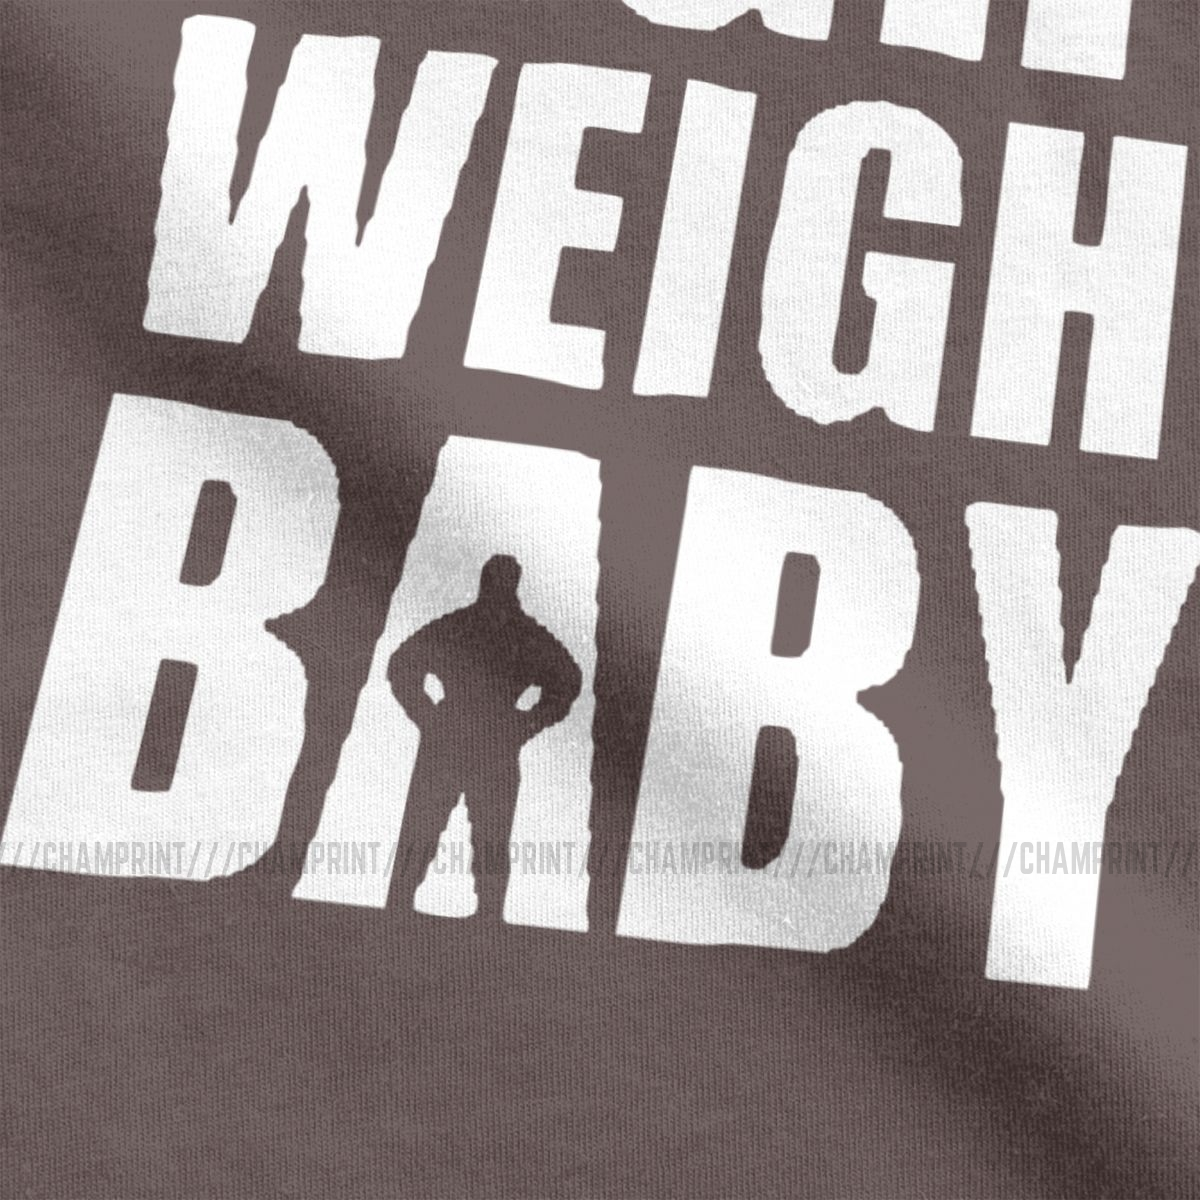 Men's T-Shirts Ronnie Coleman Lightweight Baby Casual Tee Shirt Gym Fit Fitness Bodybuilding T Shirt Crewneck Tops Gift Idea